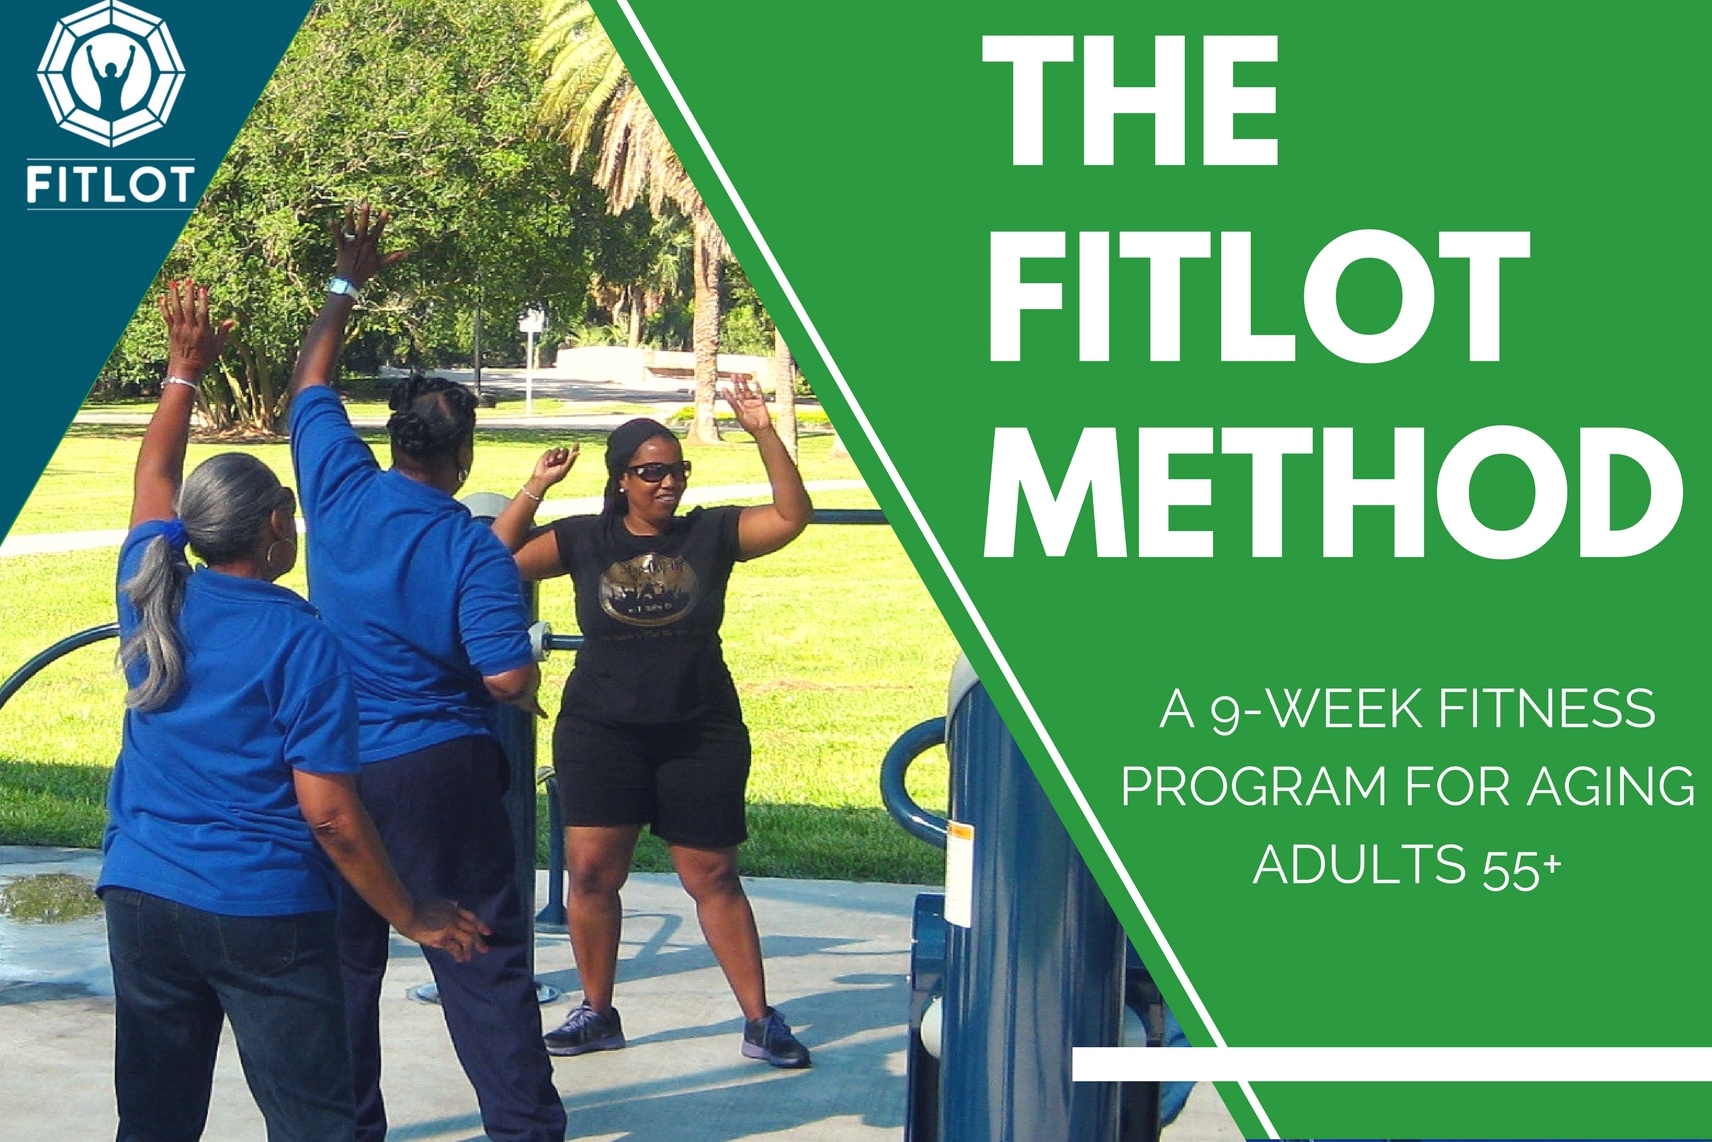 The_FitLot_Method_Flyer.jpg